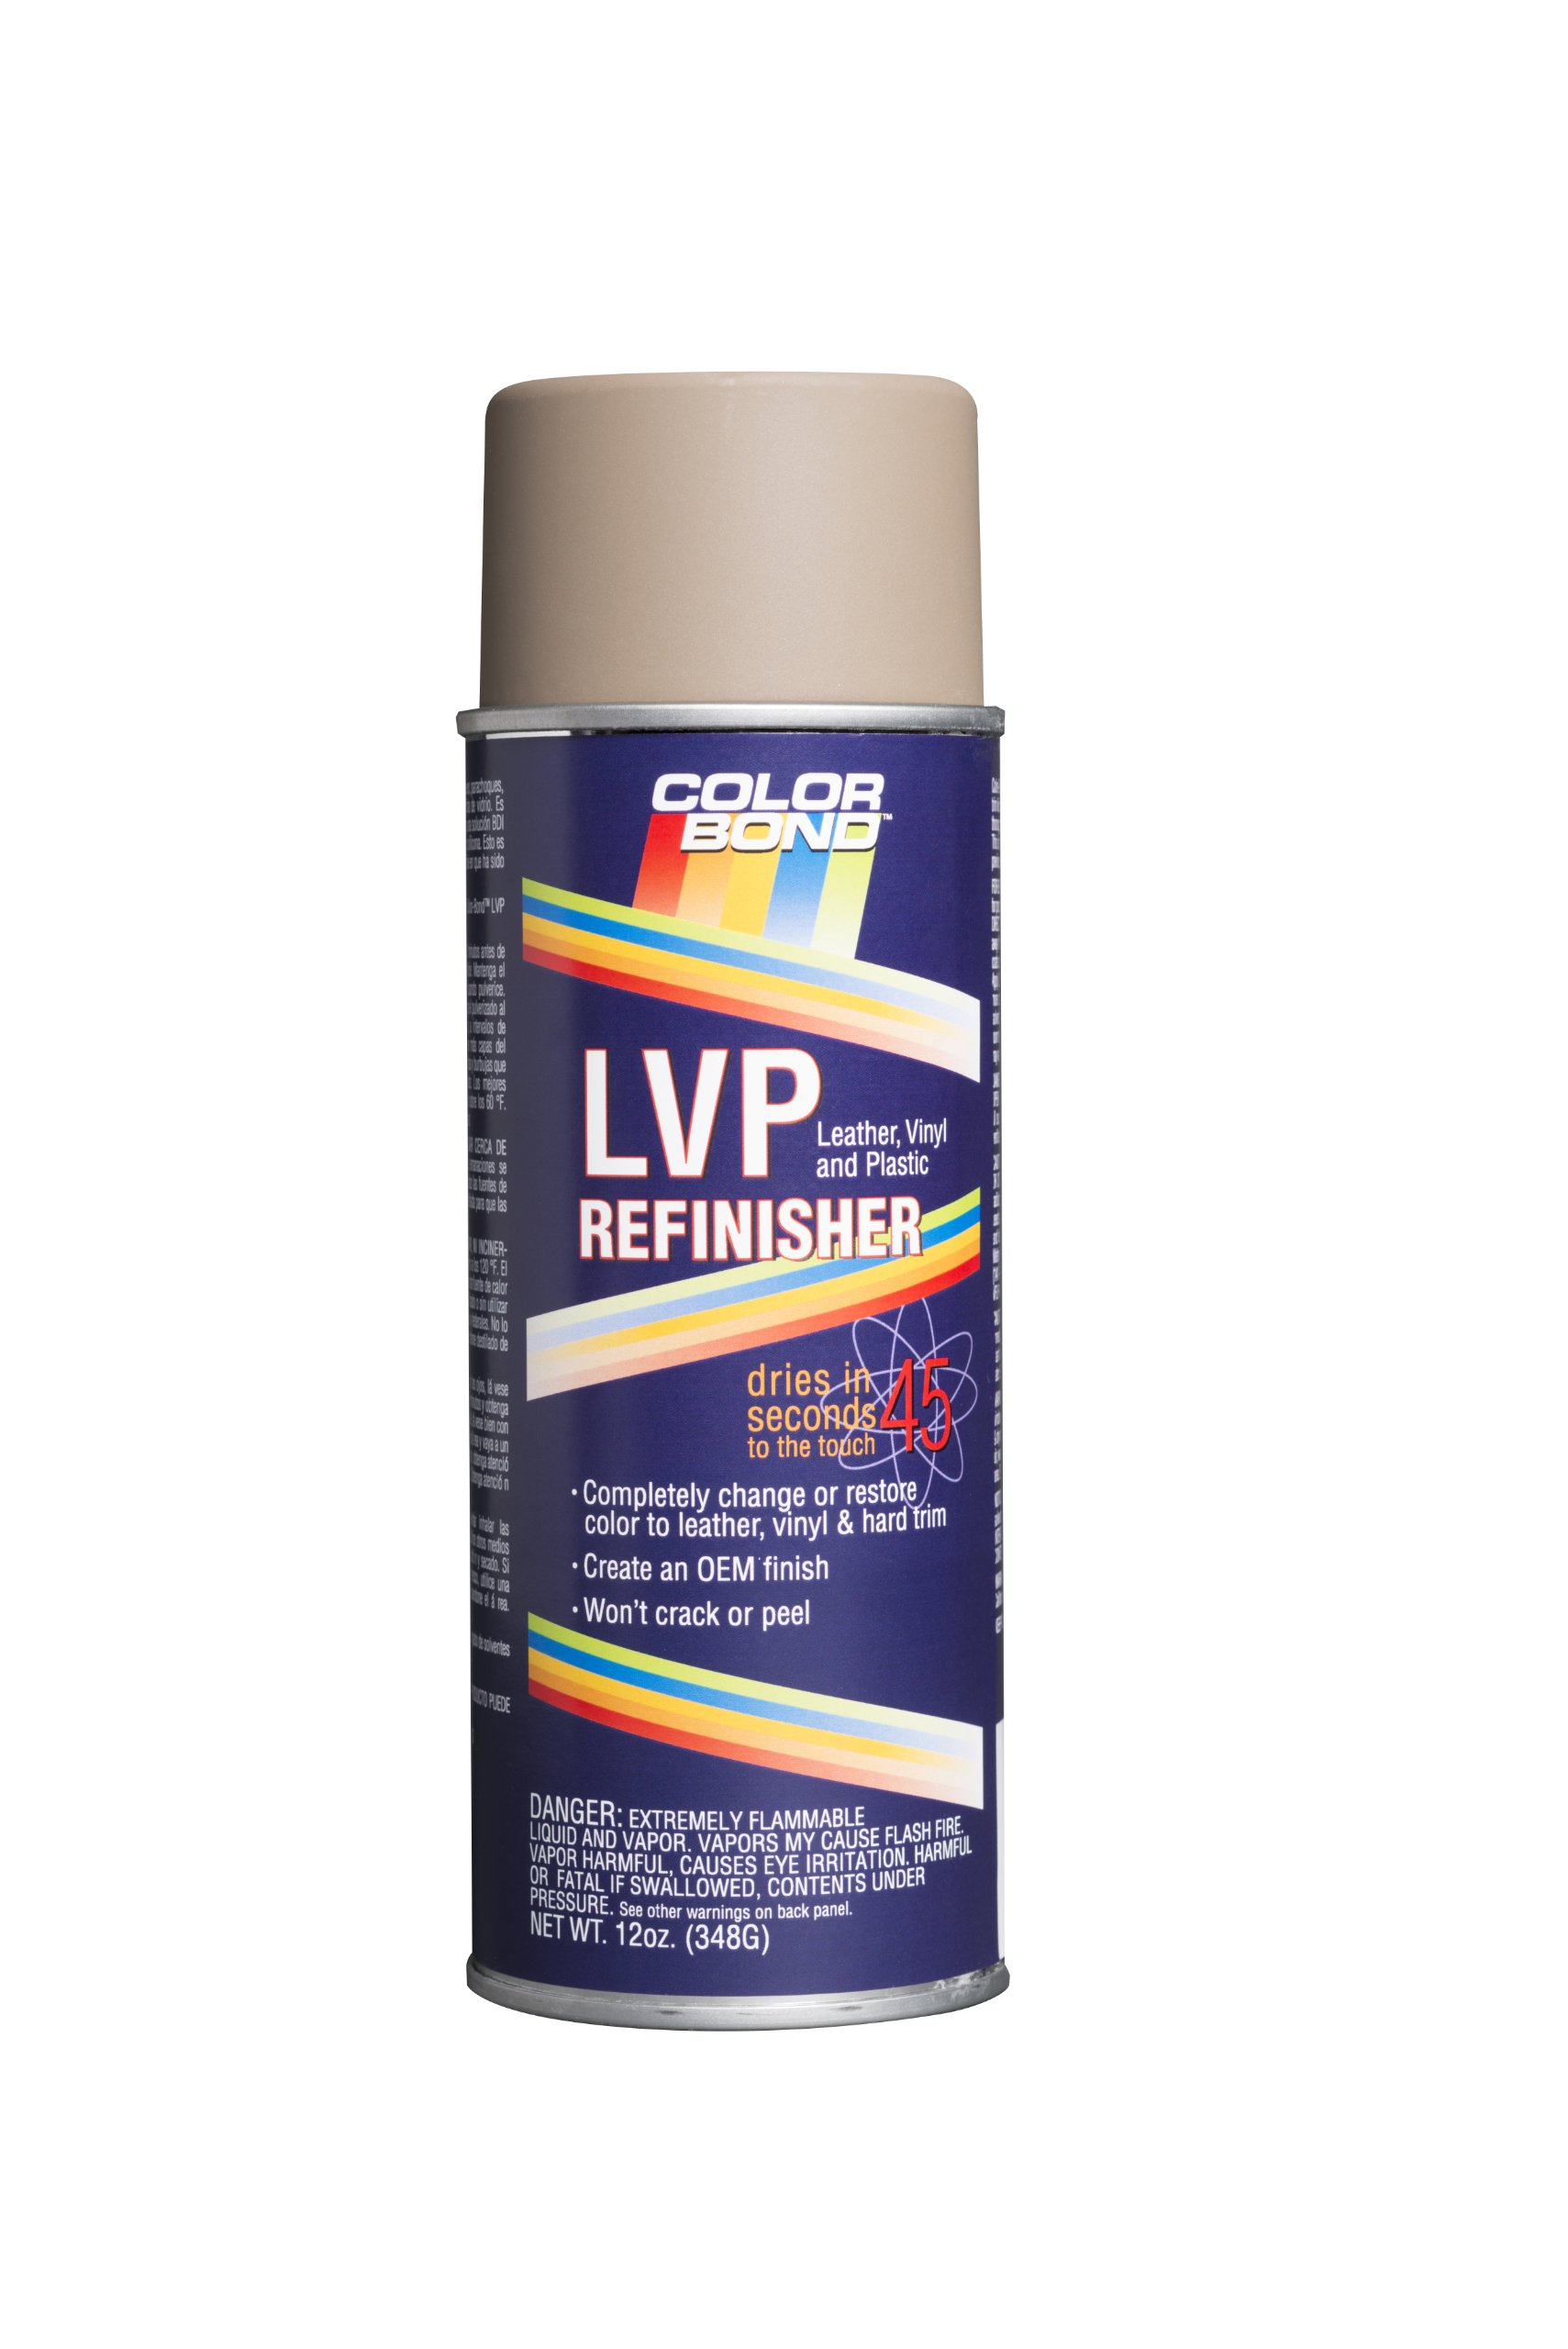 ColorBond (64) GM Crimson LVP Leather, Vinyl & Hard Plastic Refinisher Spray Paint - 12 oz.